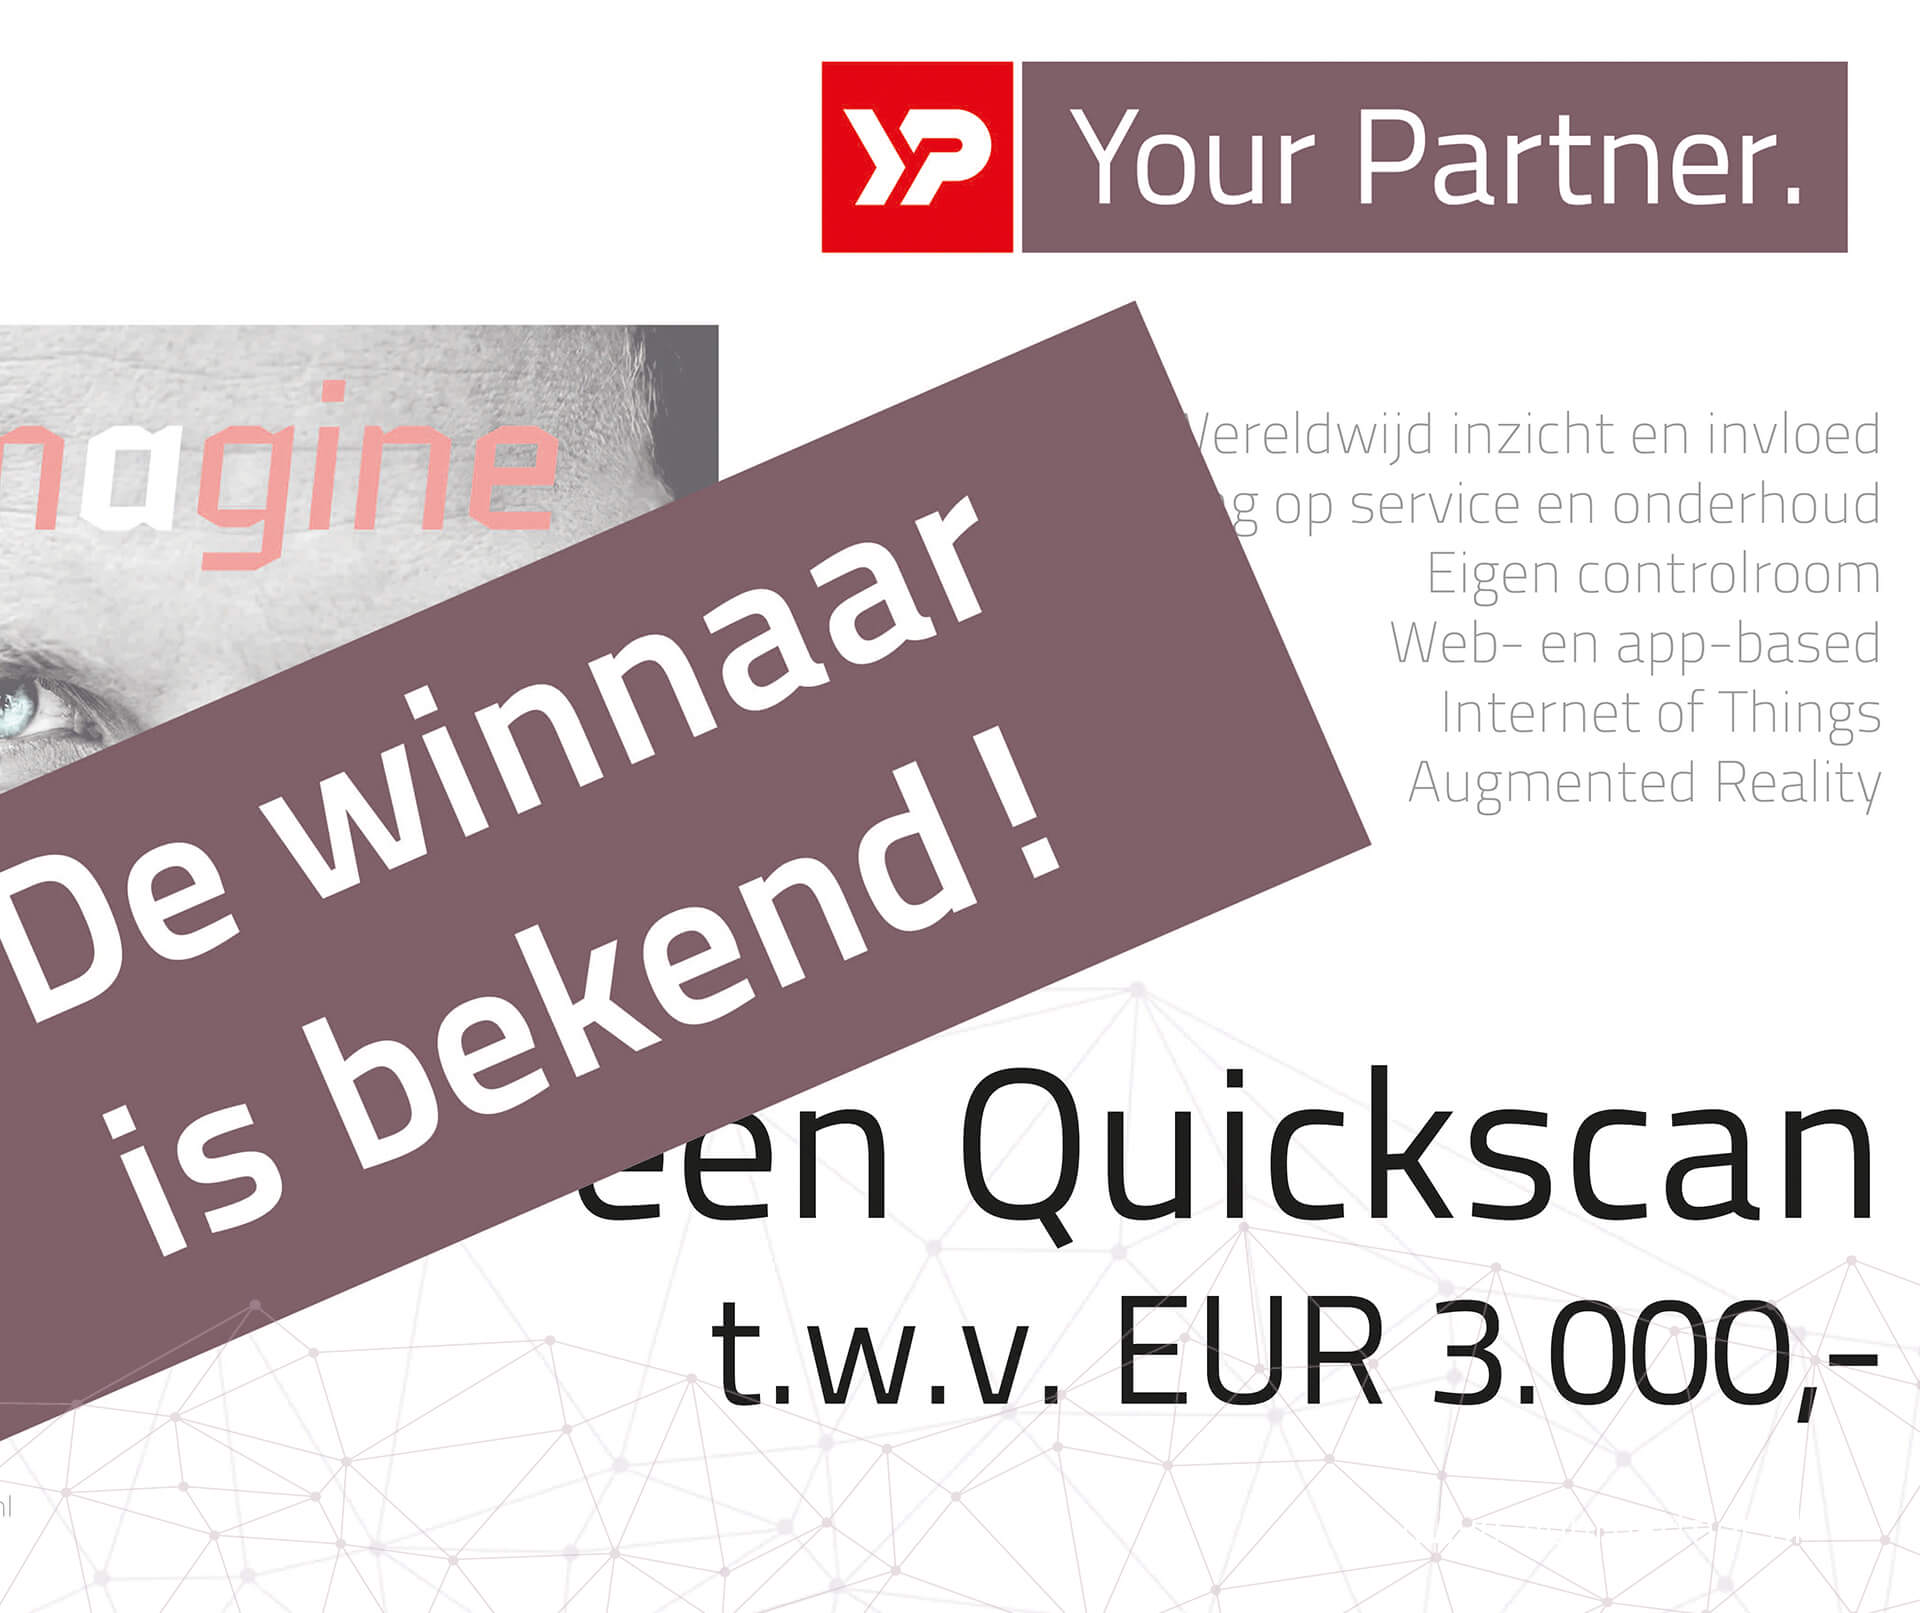 Stork BV winnaar van de YP Your Partner Quickscan